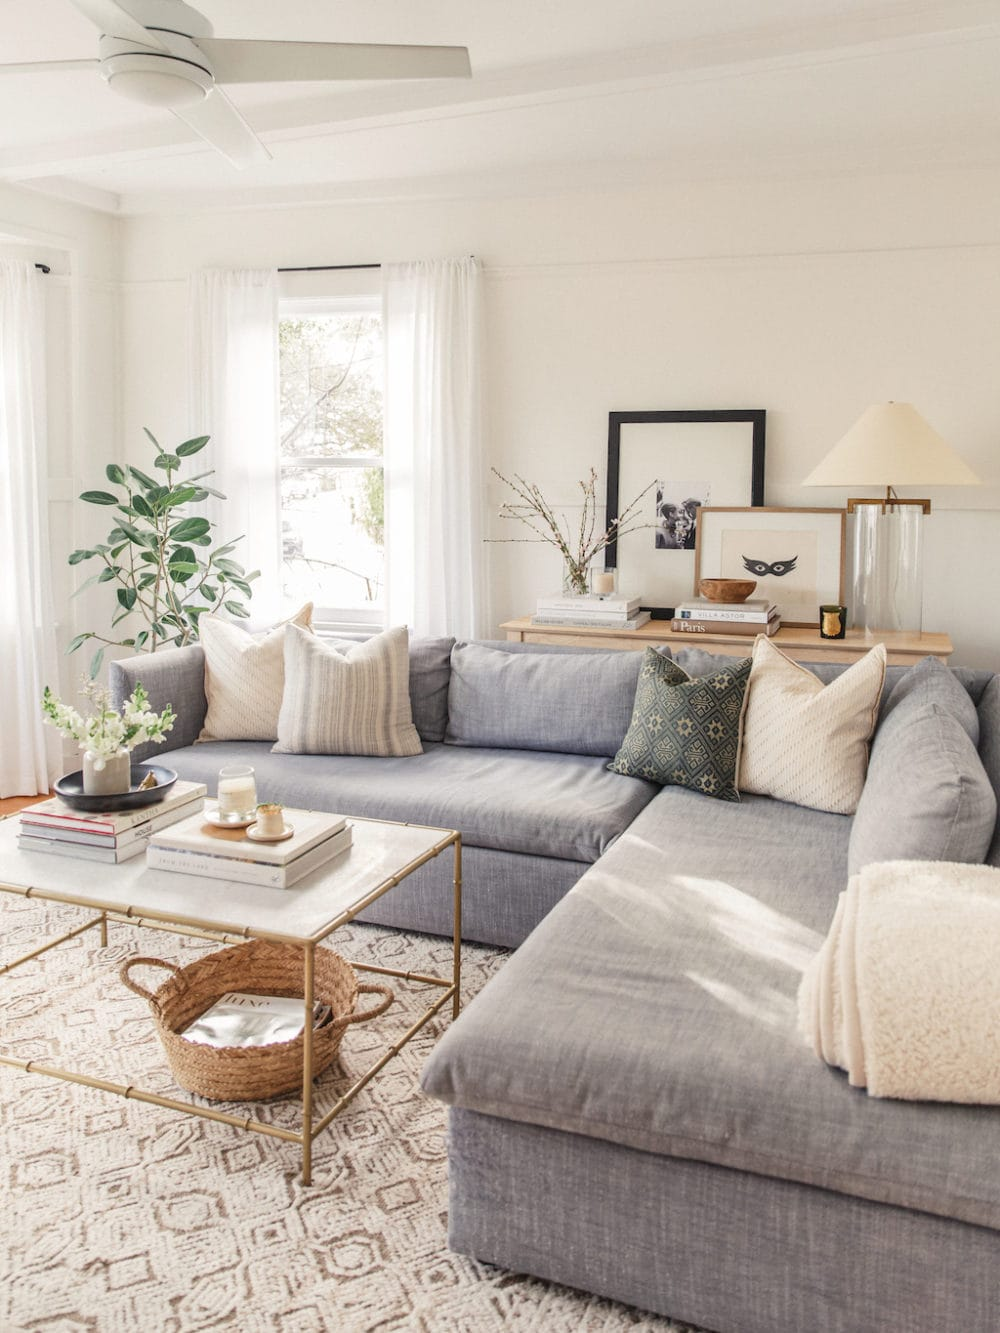 a living room painted with an off-white color